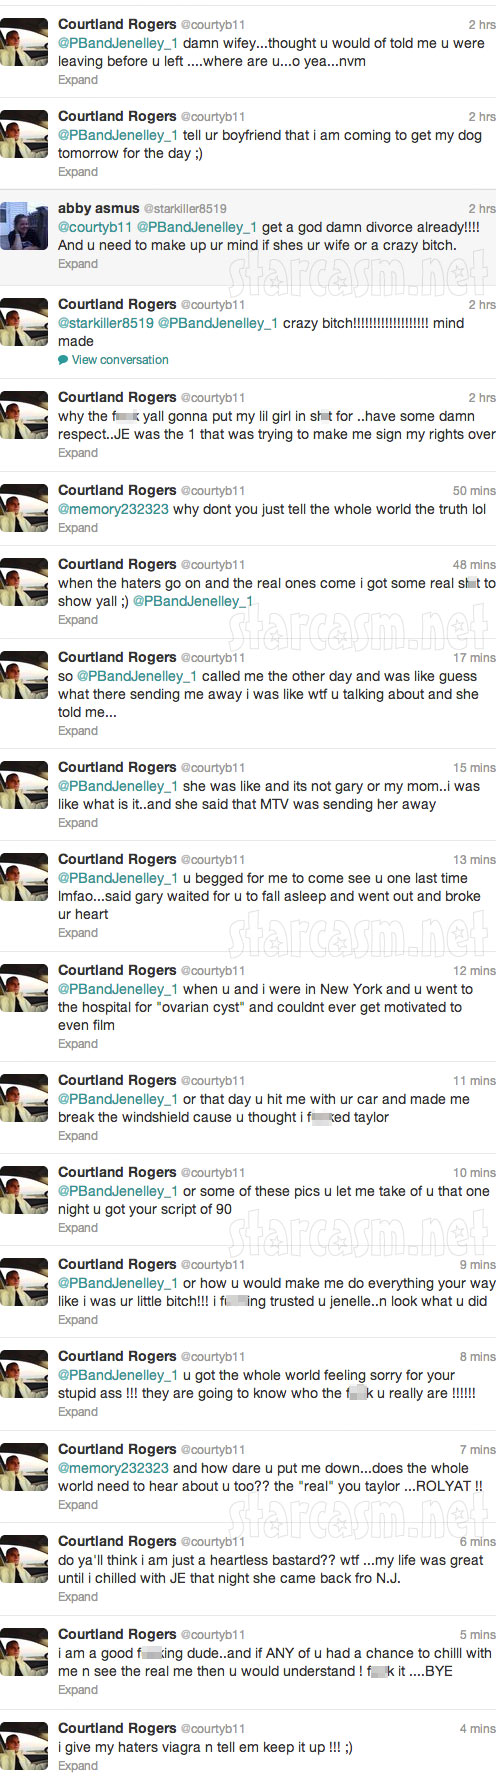 Corutland Rogers tweets that MTV is sending Jenelle to rehab like facility for 30 days